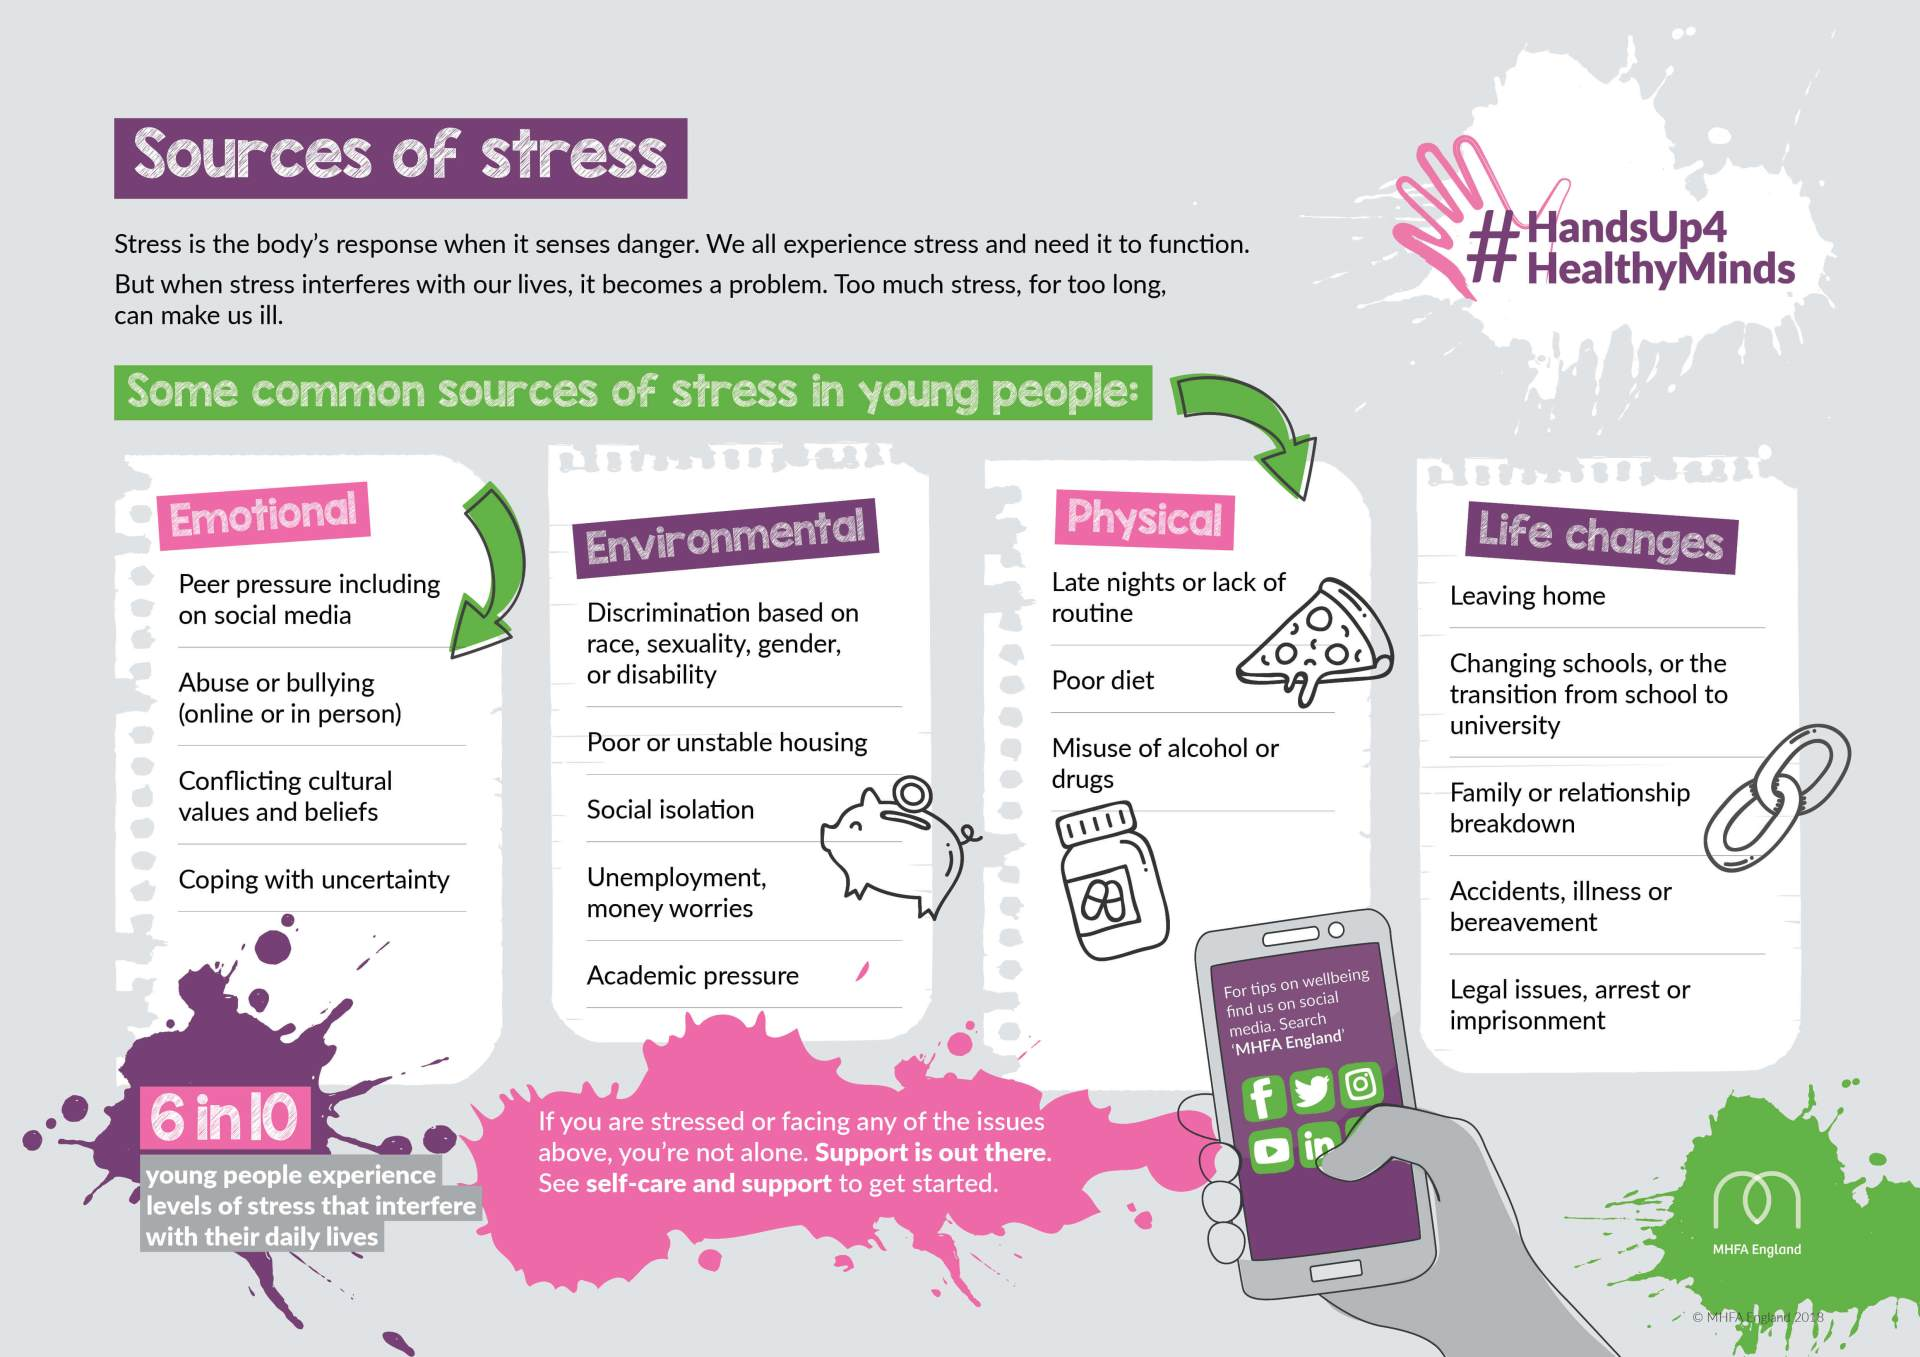 Poster of Sources of Stress